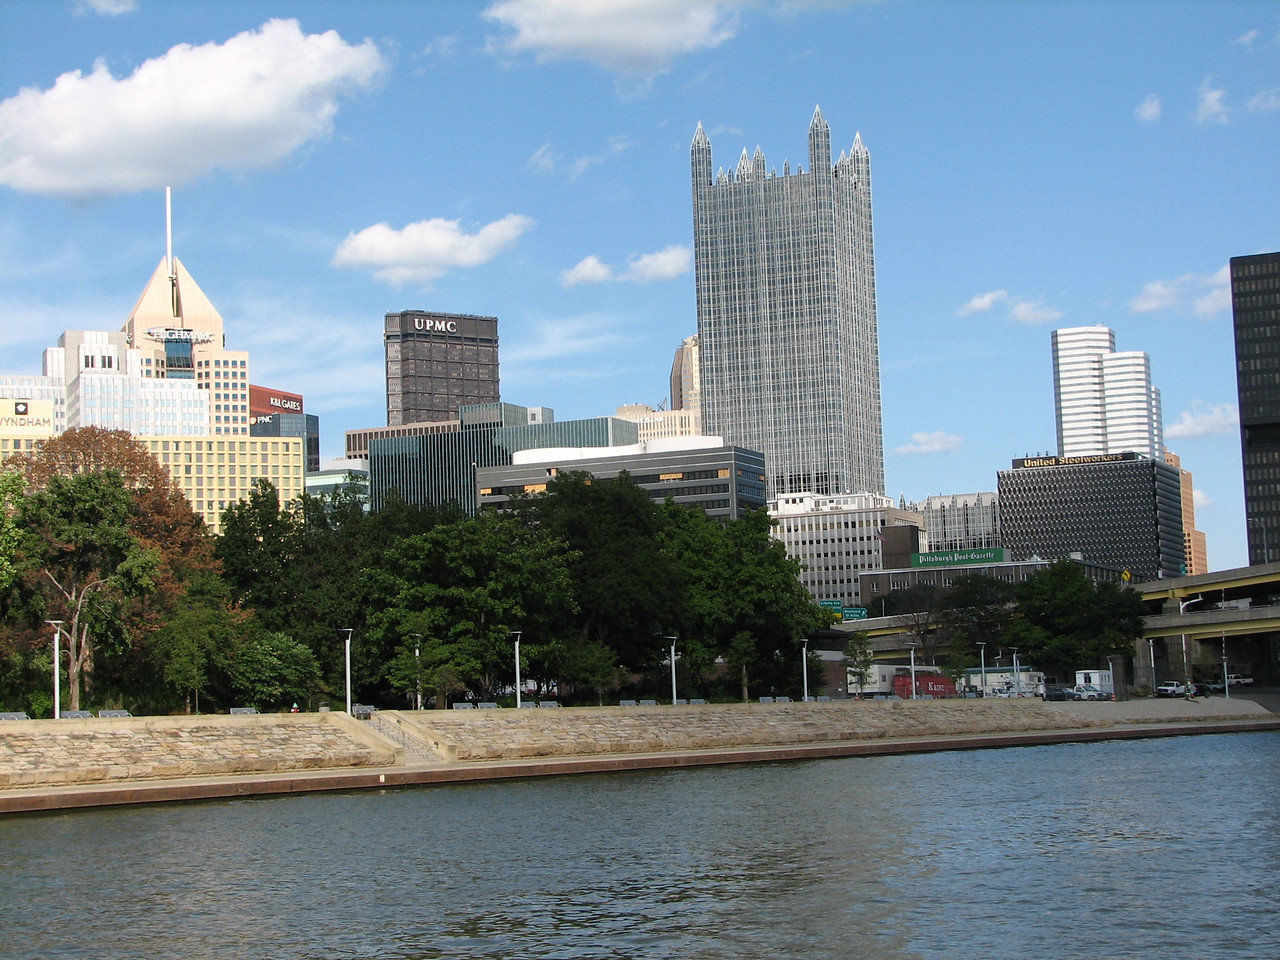 The downtown skyline from the Monongahela side of the point.  The large fountain at the round pool is closed for major repair work.